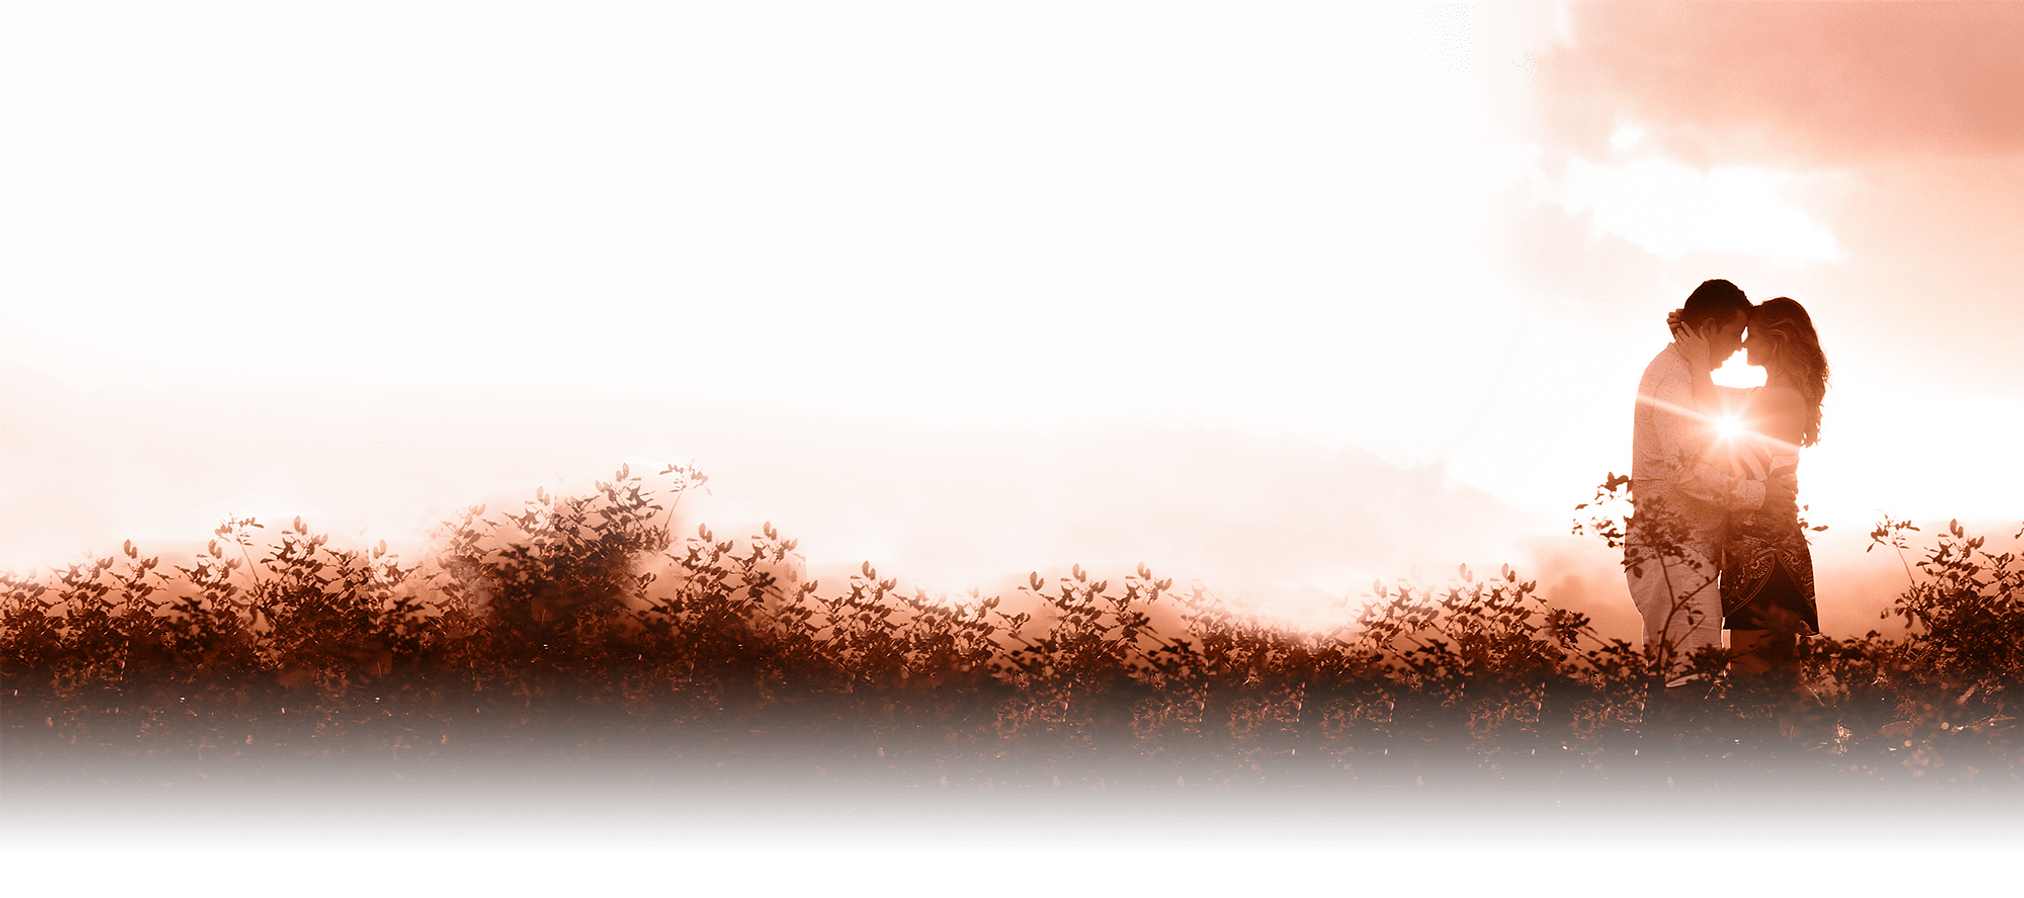 background12-min.png